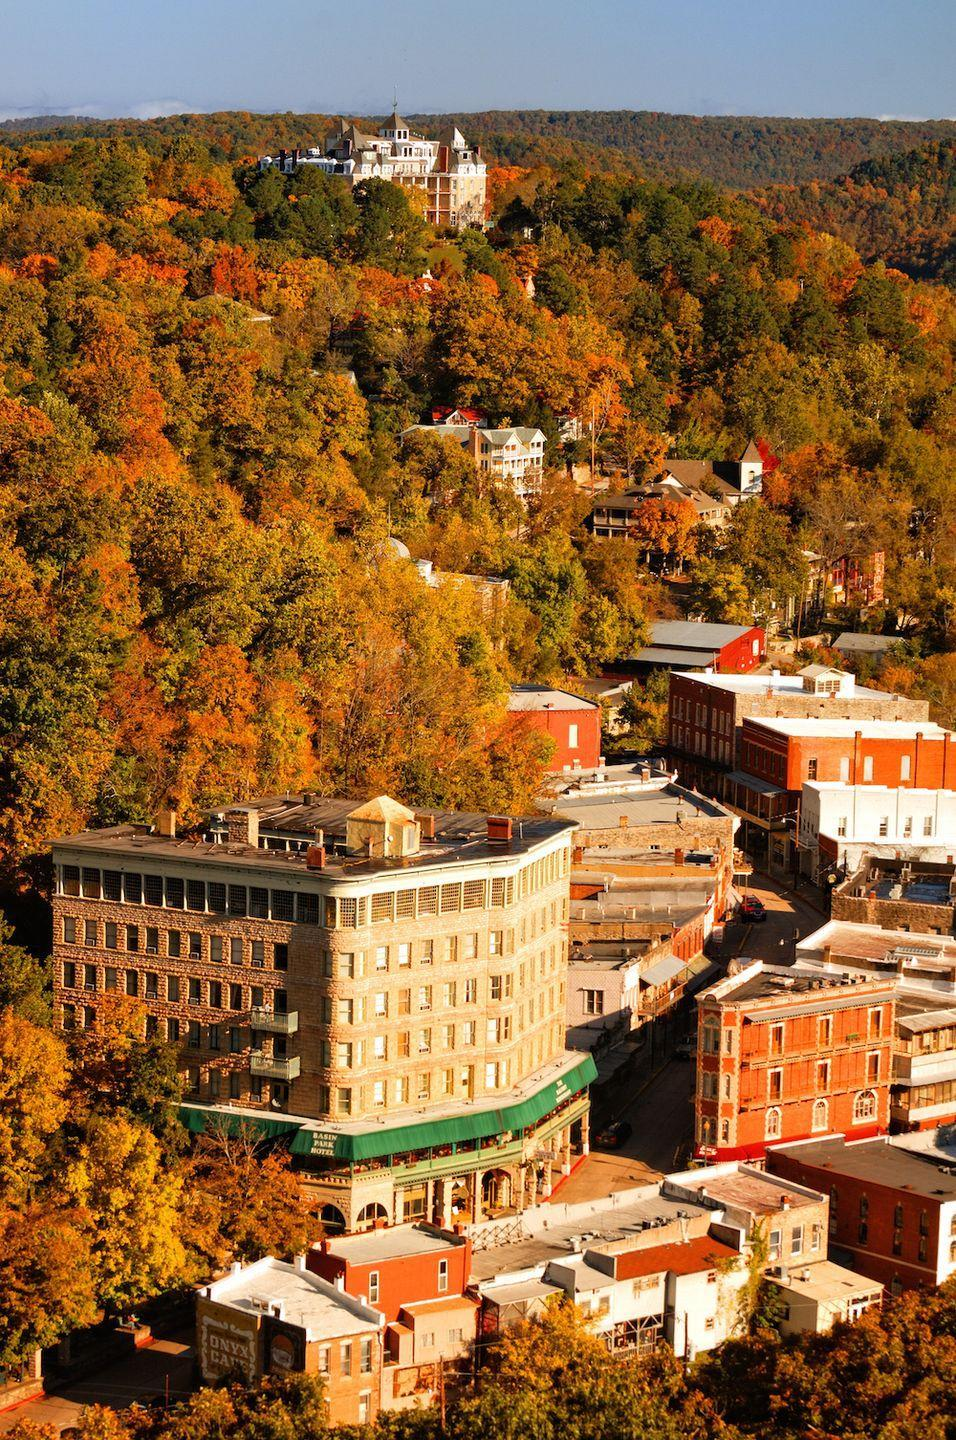 """<p>To live in <a href=""""http://www.eurekaspringsonline.com/"""" rel=""""nofollow noopener"""" target=""""_blank"""" data-ylk=""""slk:Eureka Springs"""" class=""""link rapid-noclick-resp"""">Eureka Springs</a> is to be surrounded by natural beauty 24-7. Even the town's most famous place of worship, the <a href=""""http://www.thorncrown.com/"""" rel=""""nofollow noopener"""" target=""""_blank"""" data-ylk=""""slk:Thorncrown Chapel"""" class=""""link rapid-noclick-resp"""">Thorncrown Chapel</a>, ensures that you can still take in the gorgeous Ozark mountains scenery via 6,000-square-feet of windows. </p><p><a href=""""https://www.housebeautiful.com/room-decorating/g1494/rooms-with-great-views/"""" rel=""""nofollow noopener"""" target=""""_blank"""" data-ylk=""""slk:18 rooms with breathtaking views »"""" class=""""link rapid-noclick-resp""""><em>18 rooms with breathtaking views »</em></a></p>"""